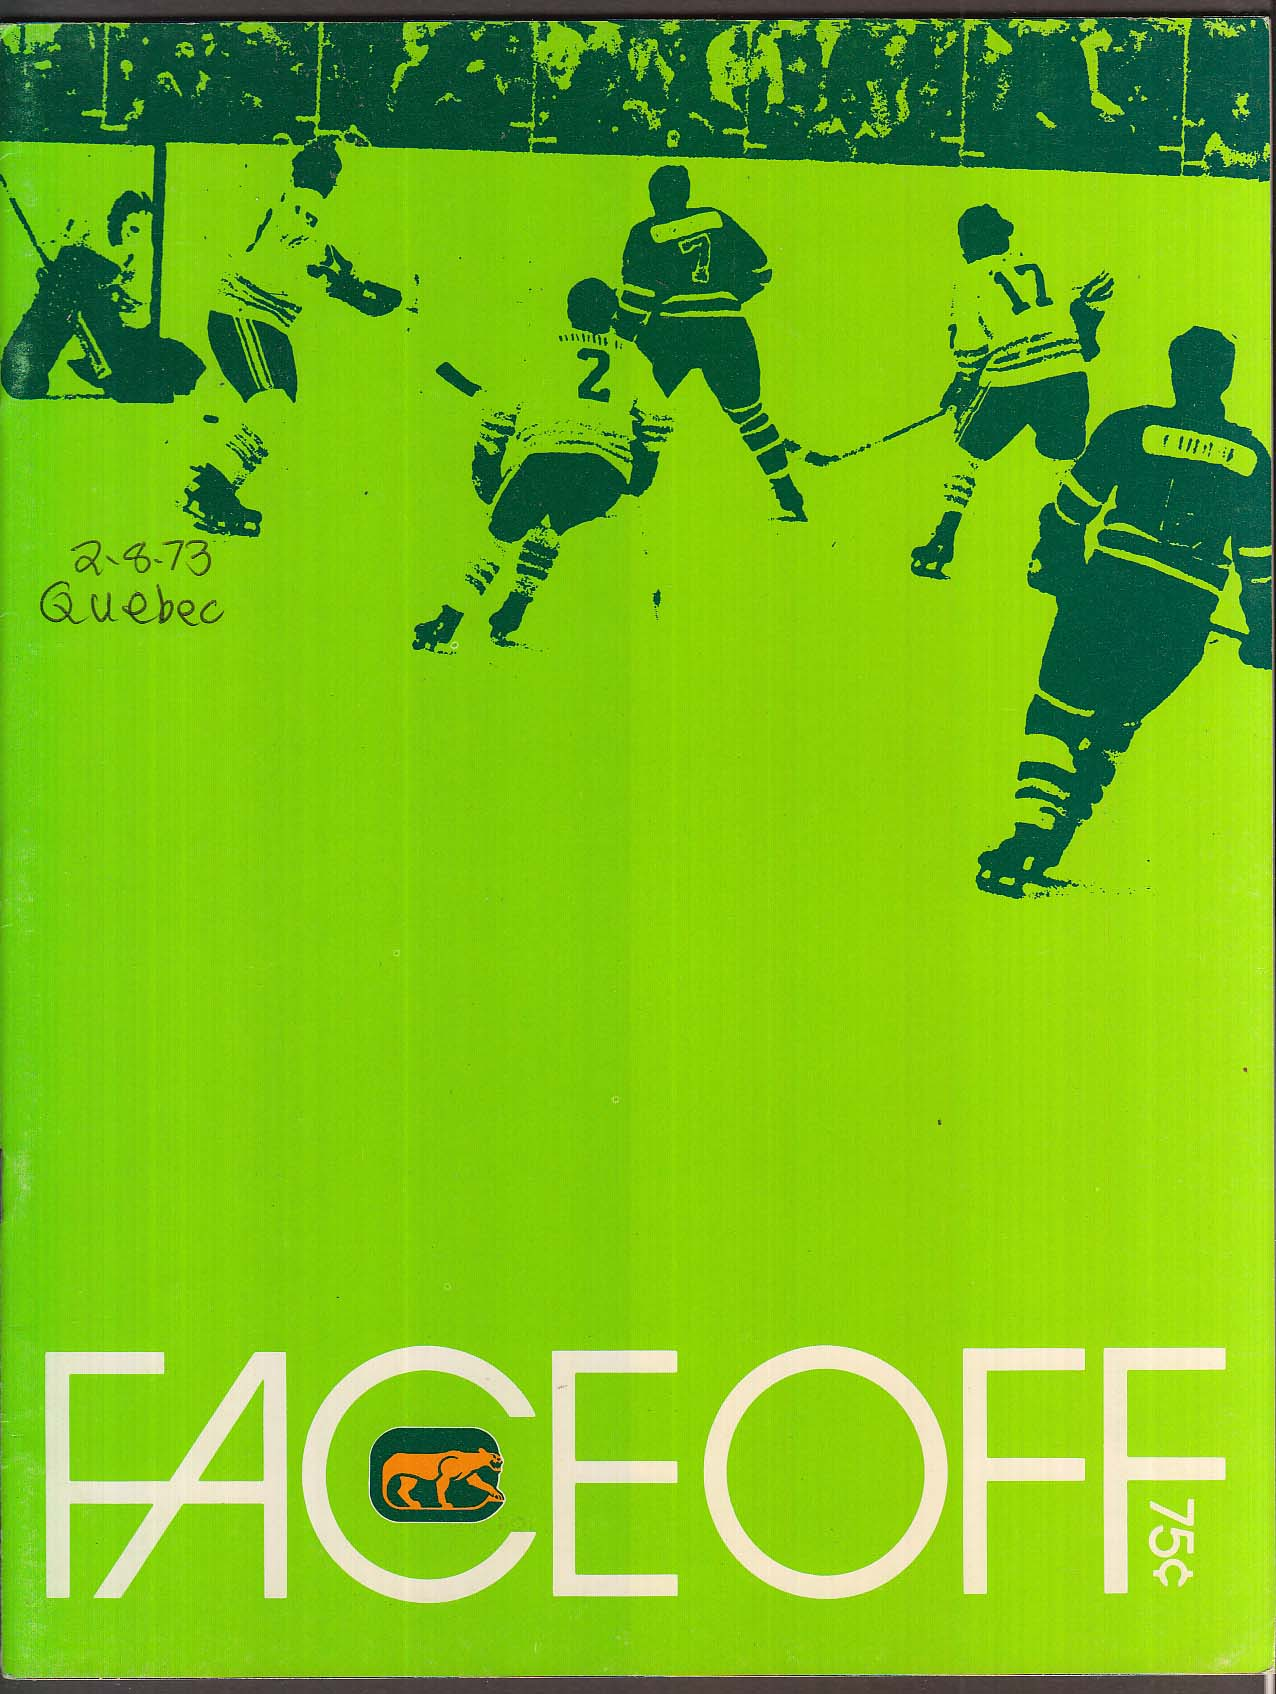 FACEOFF Chicago Cougars Hockey Club Directory 1972 UNSCORED vs Quebec Nordiques